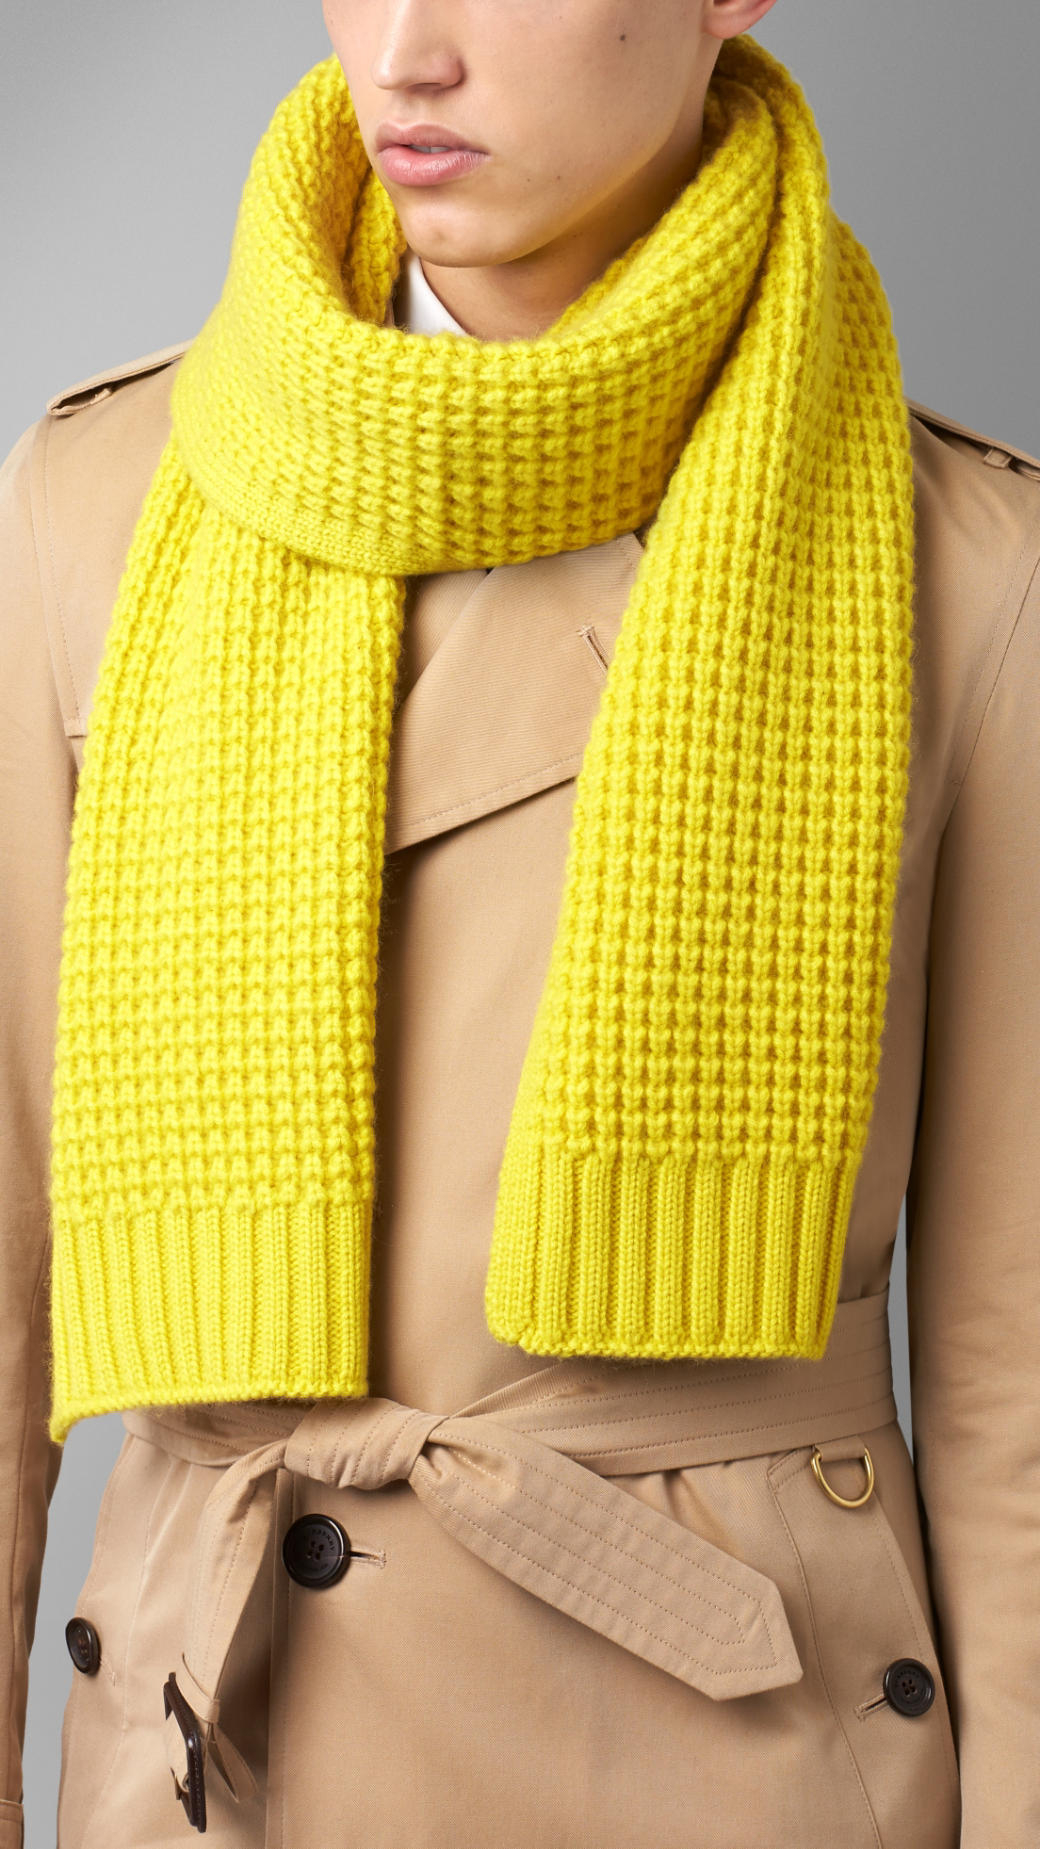 You searched for: cashmere scarf! Etsy is the home to thousands of handmade, vintage, and one-of-a-kind products and gifts related to your search. No matter what you're looking for or where you are in the world, our global marketplace of sellers can help you find unique and affordable options. Let's get started!